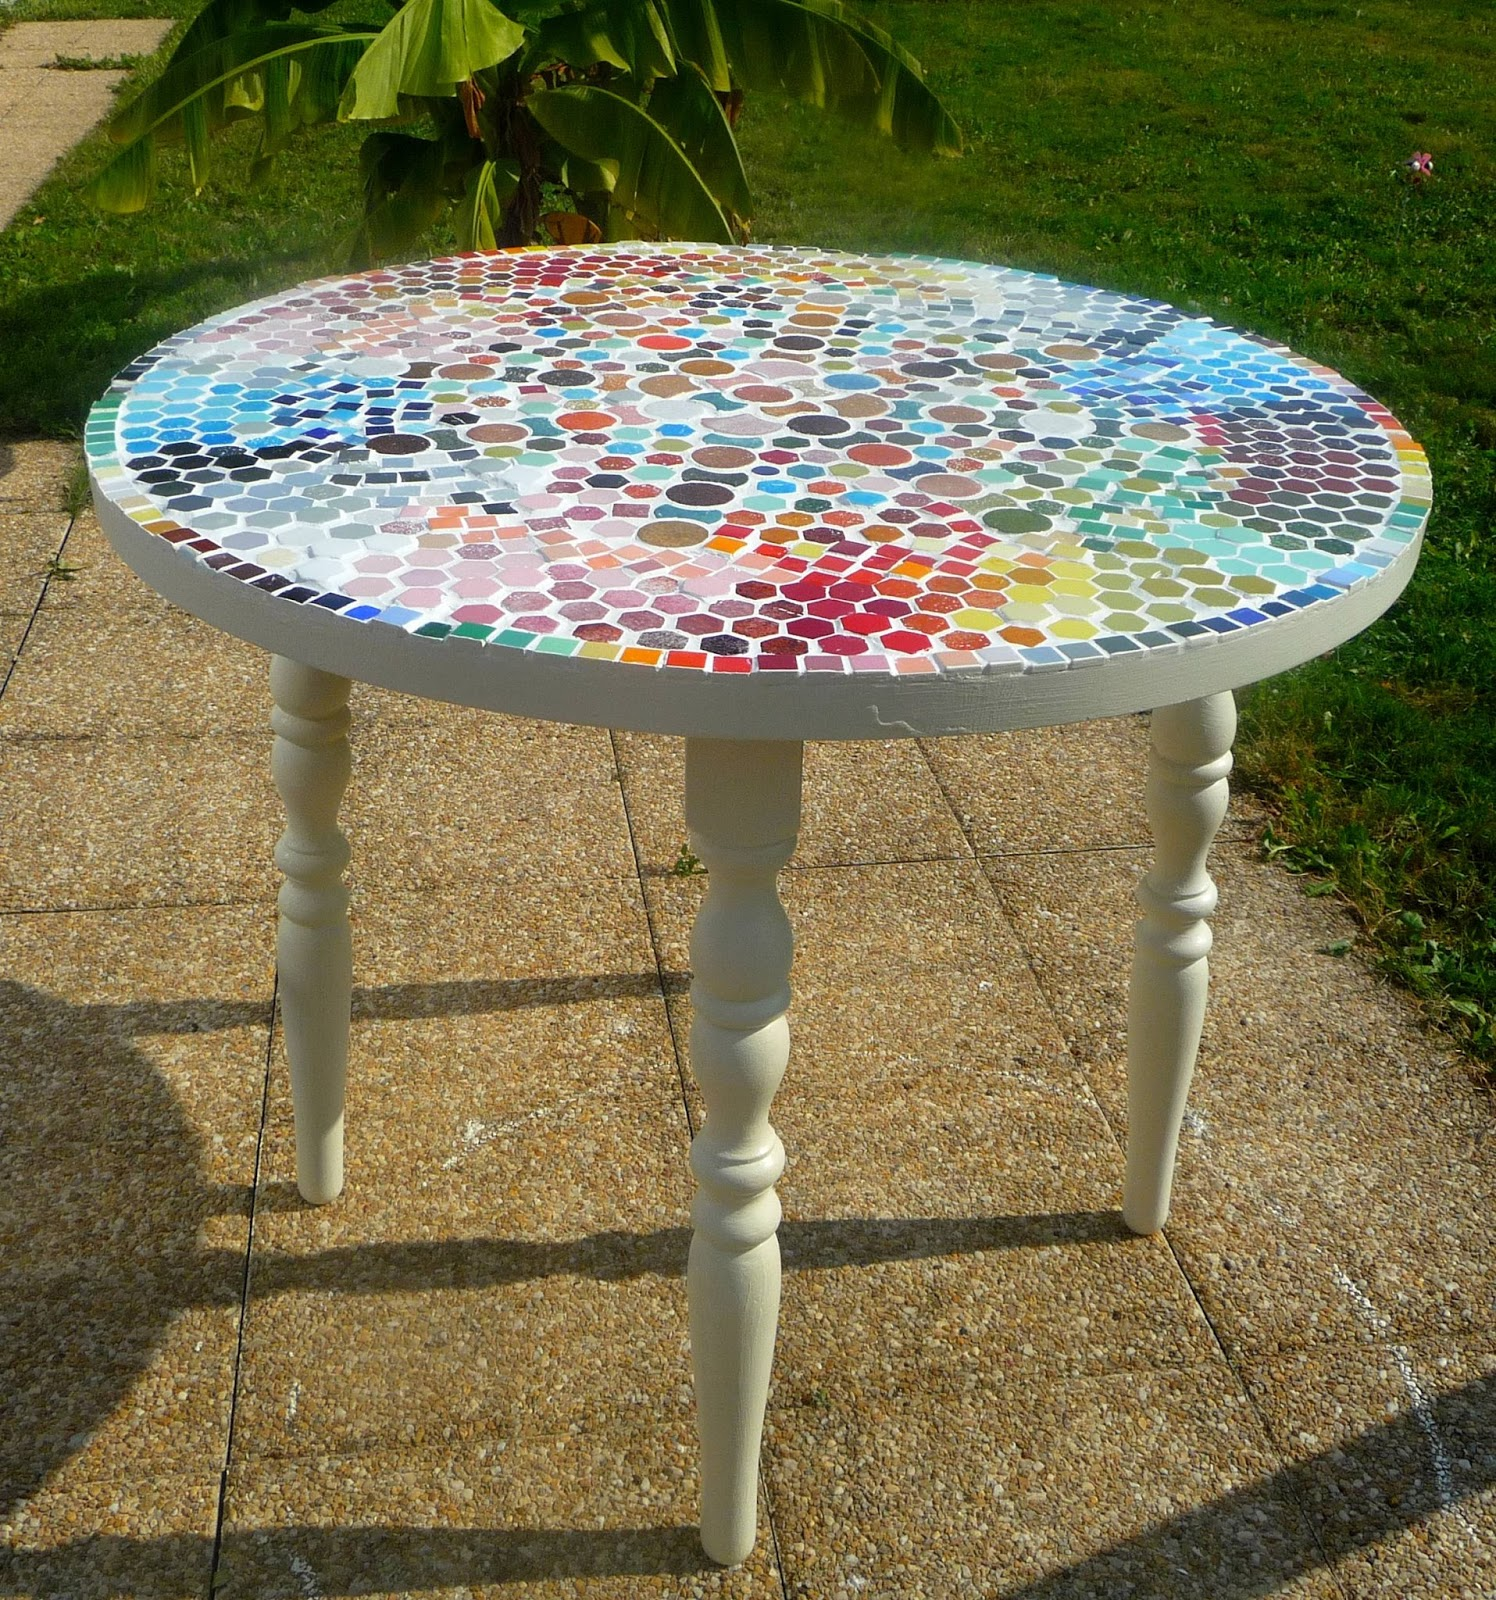 Diy transformer une table d 39 int rieur en table d 39 ext rieur for Table exterieur diy